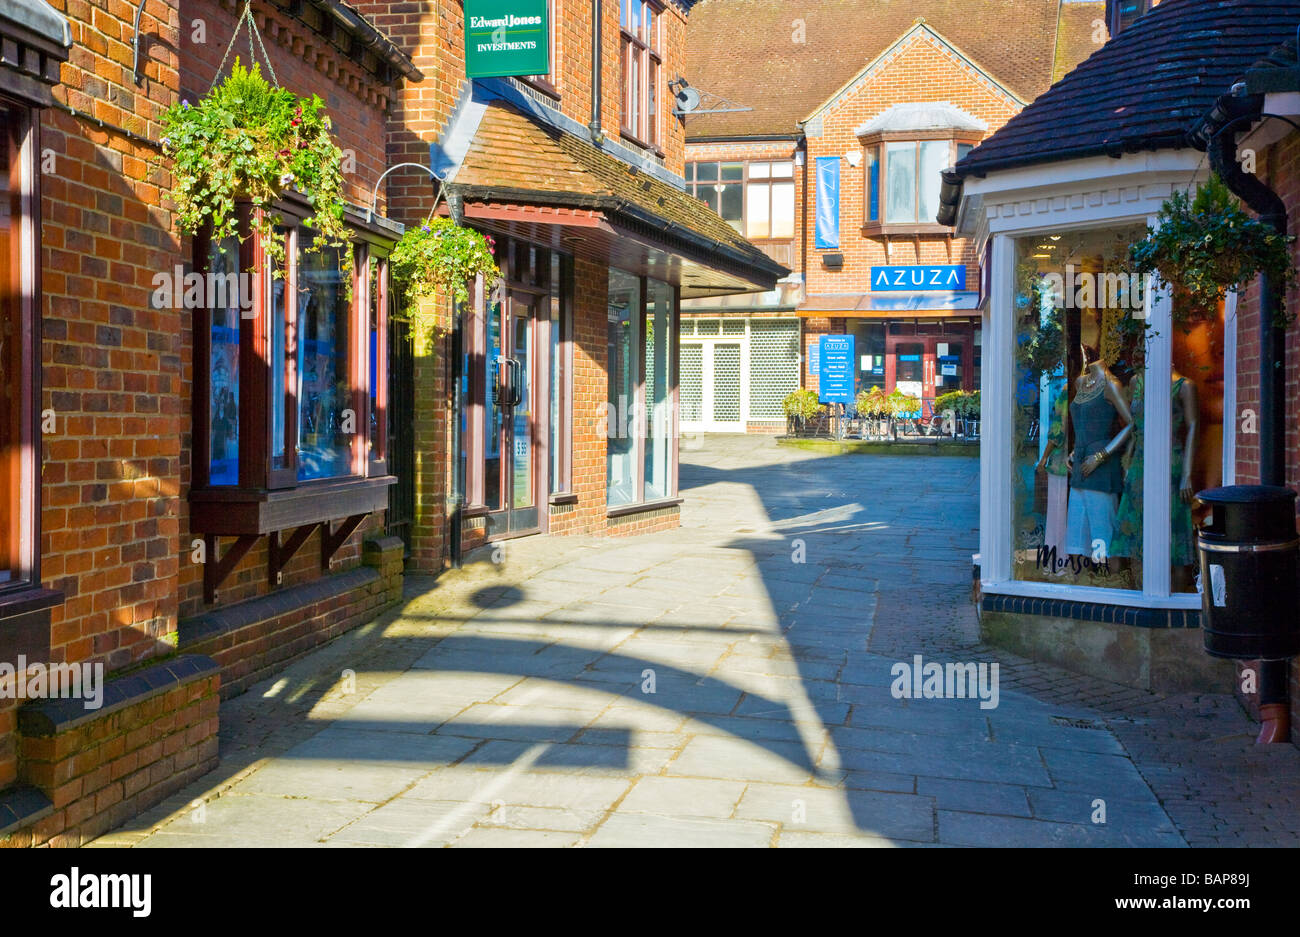 Hughenden Yard a pedestrianised area of upmarket boutiques shops and cafes in Marlborough Wiltshire England UK - Stock Image